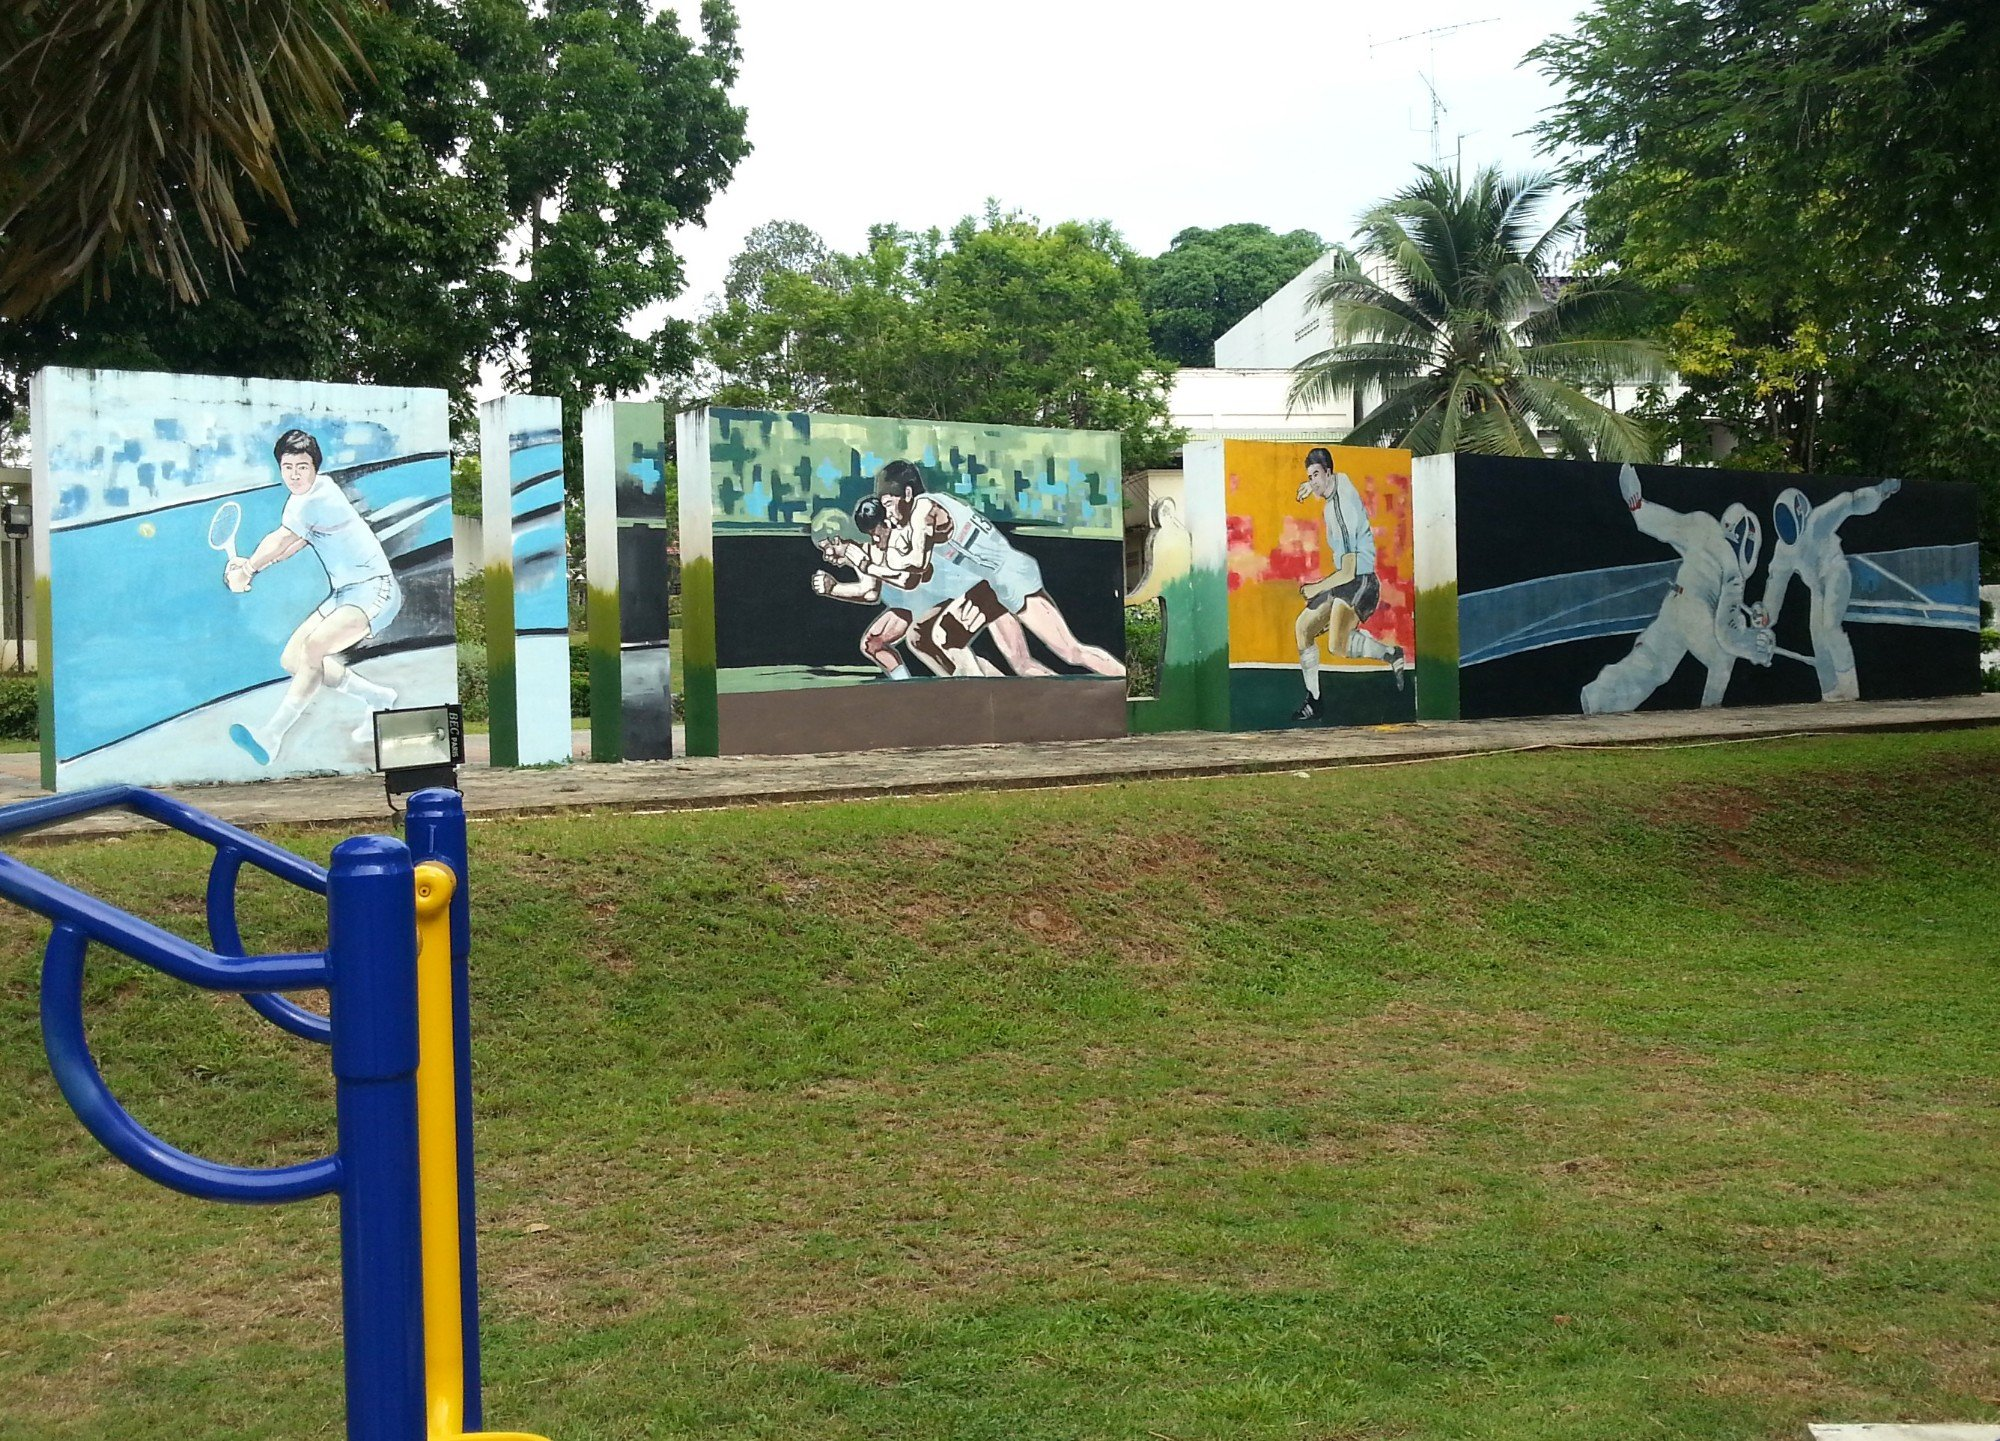 Sporting murals in Trang Town Park